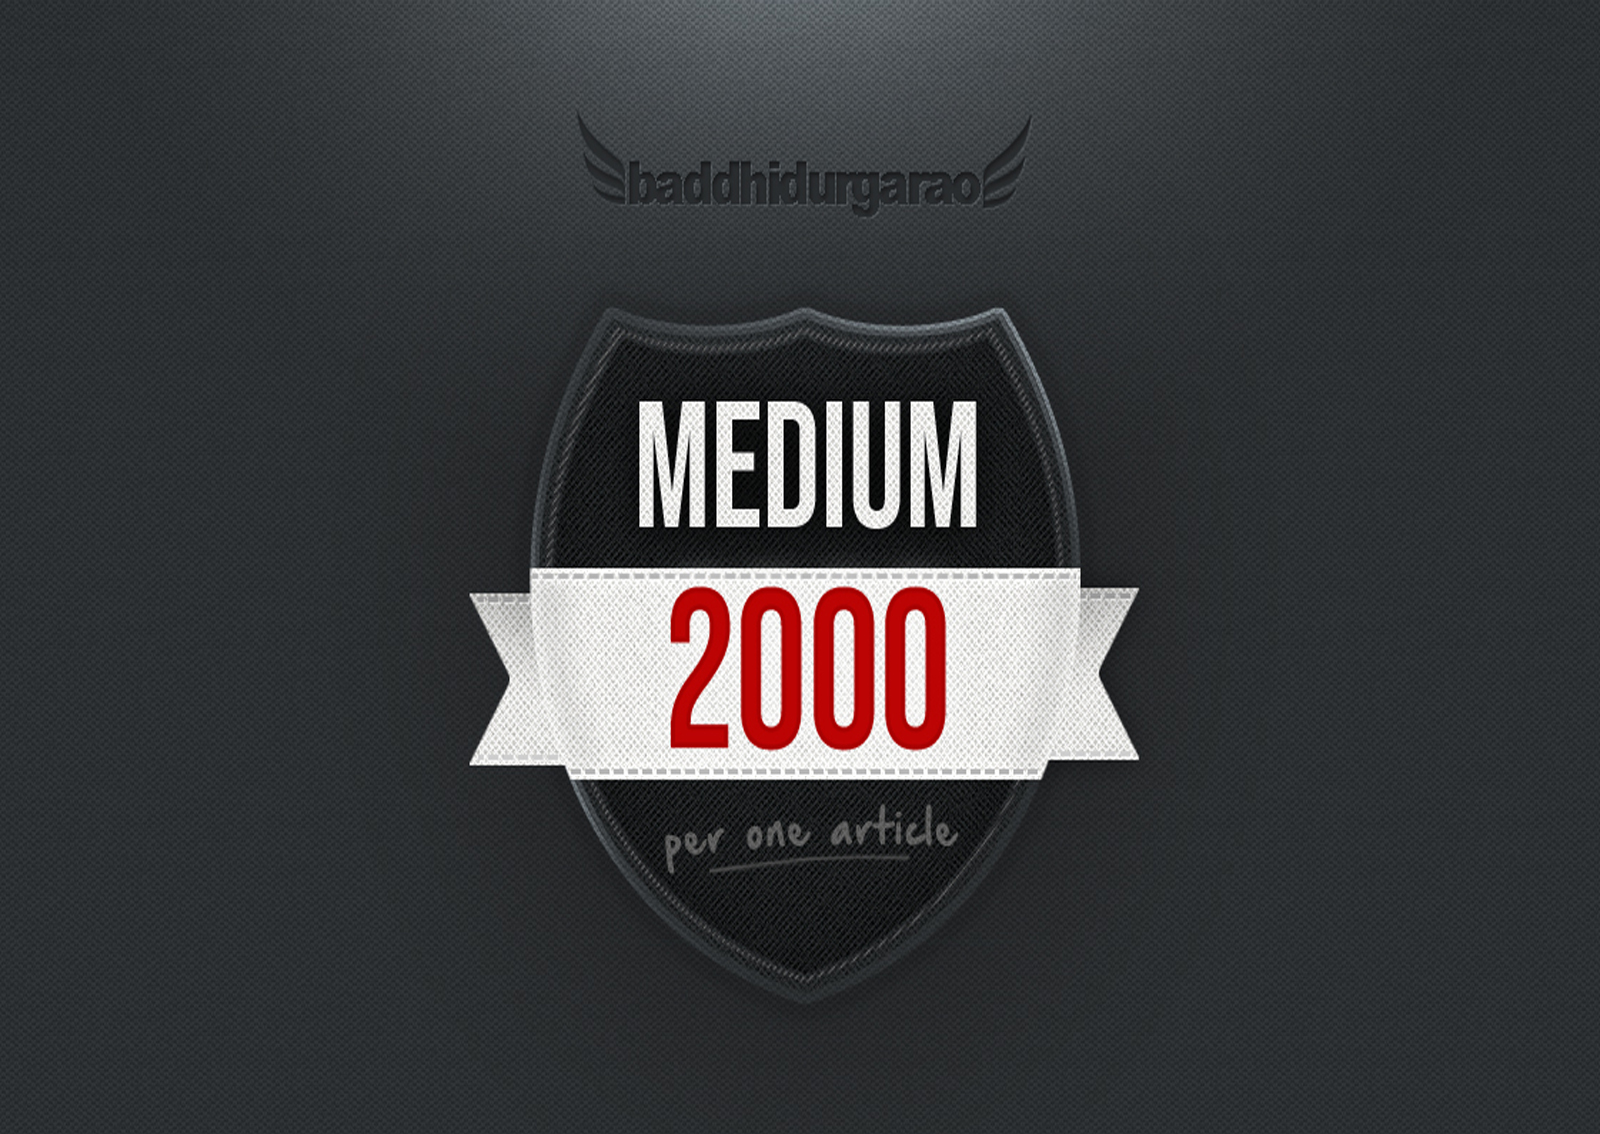 Get 2000 Medium Claps to Your Article